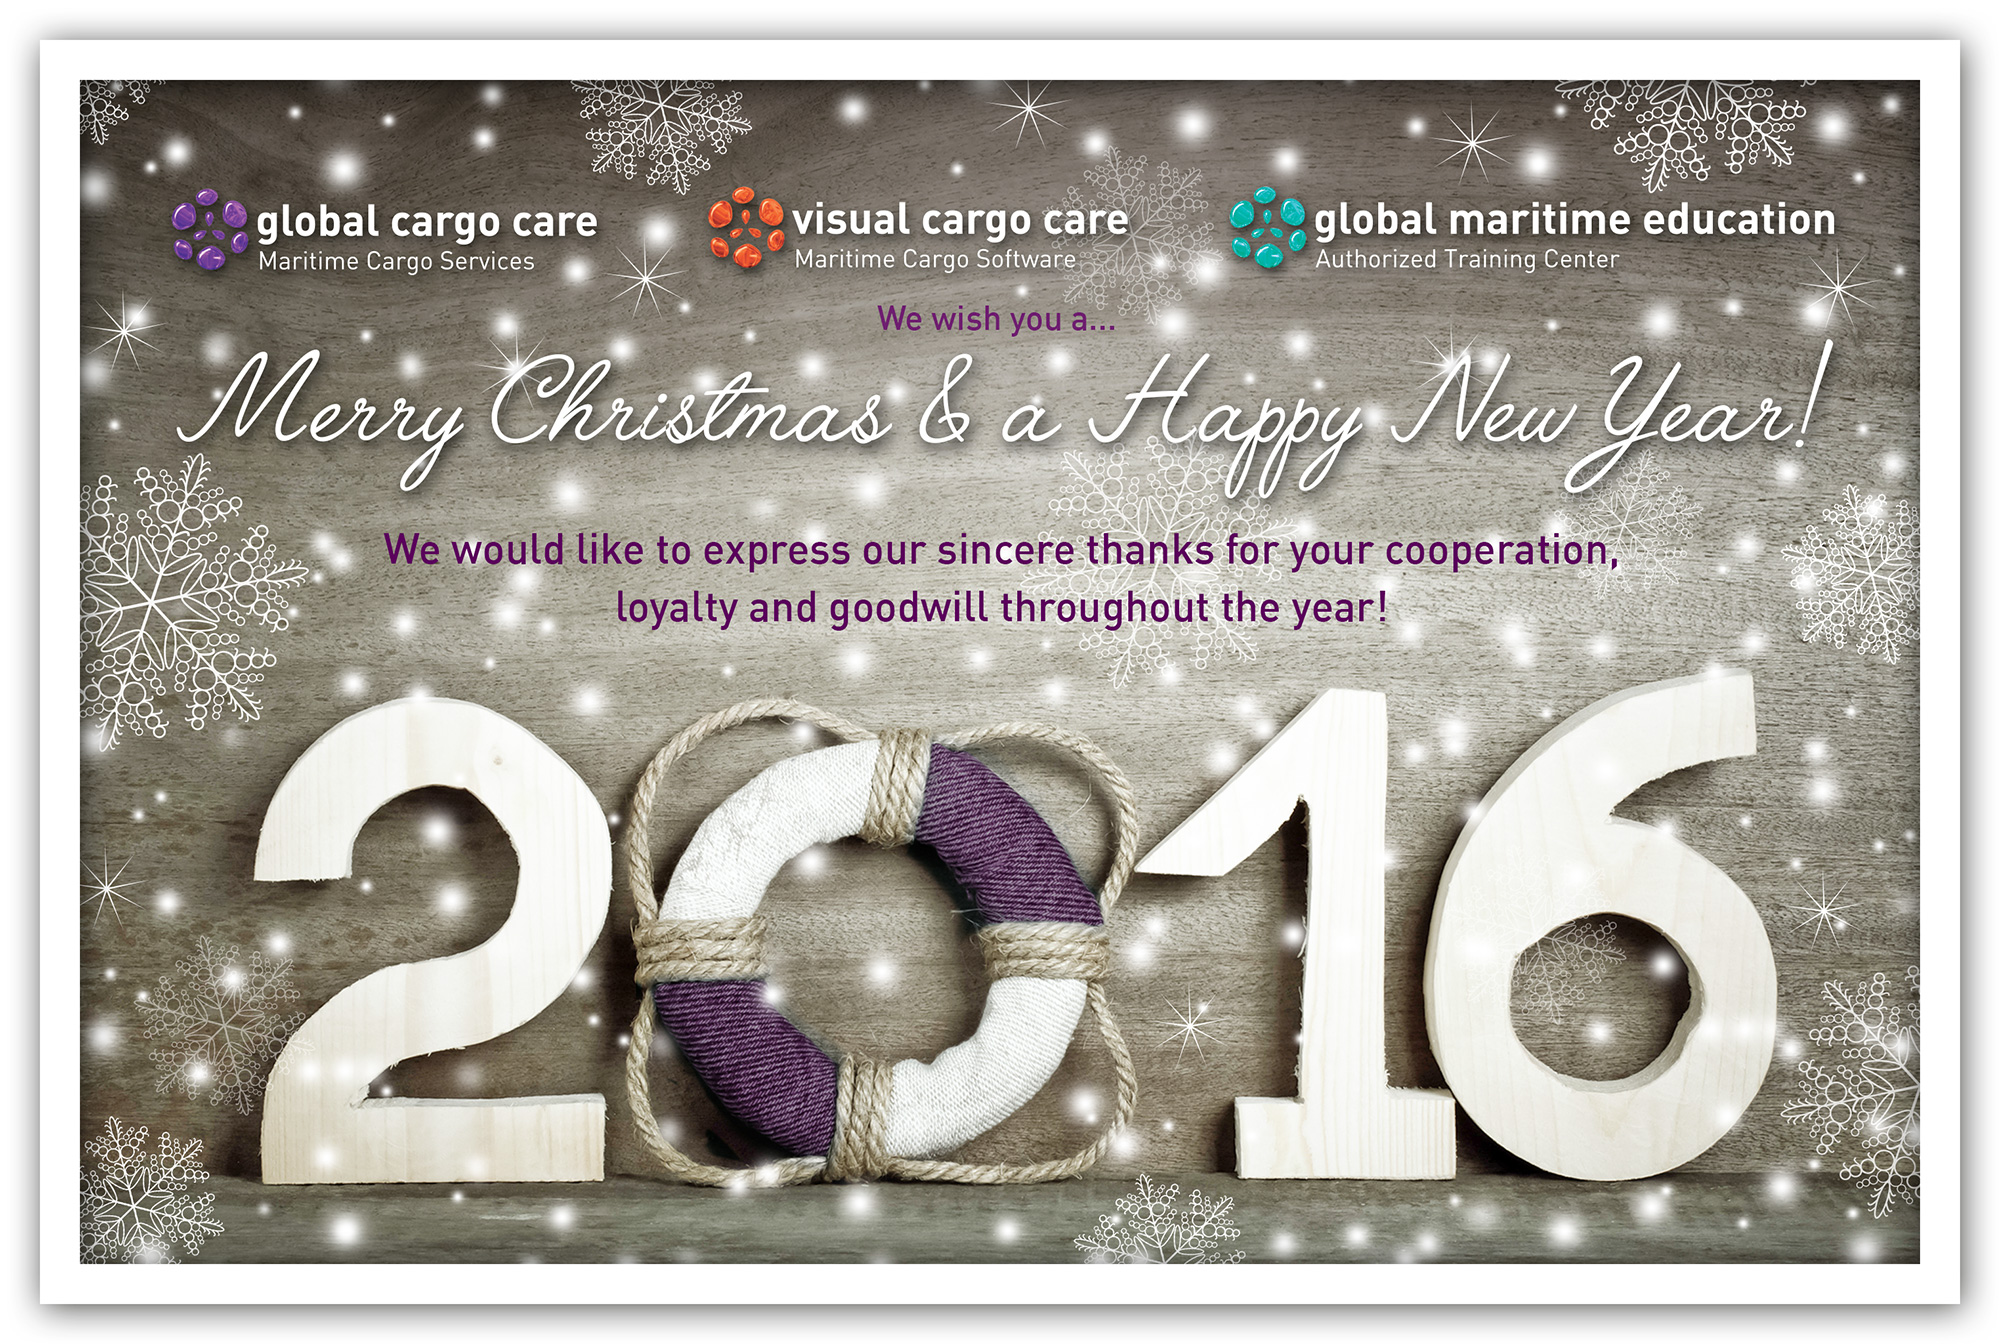 KERSTKAART_GCC_2015_small